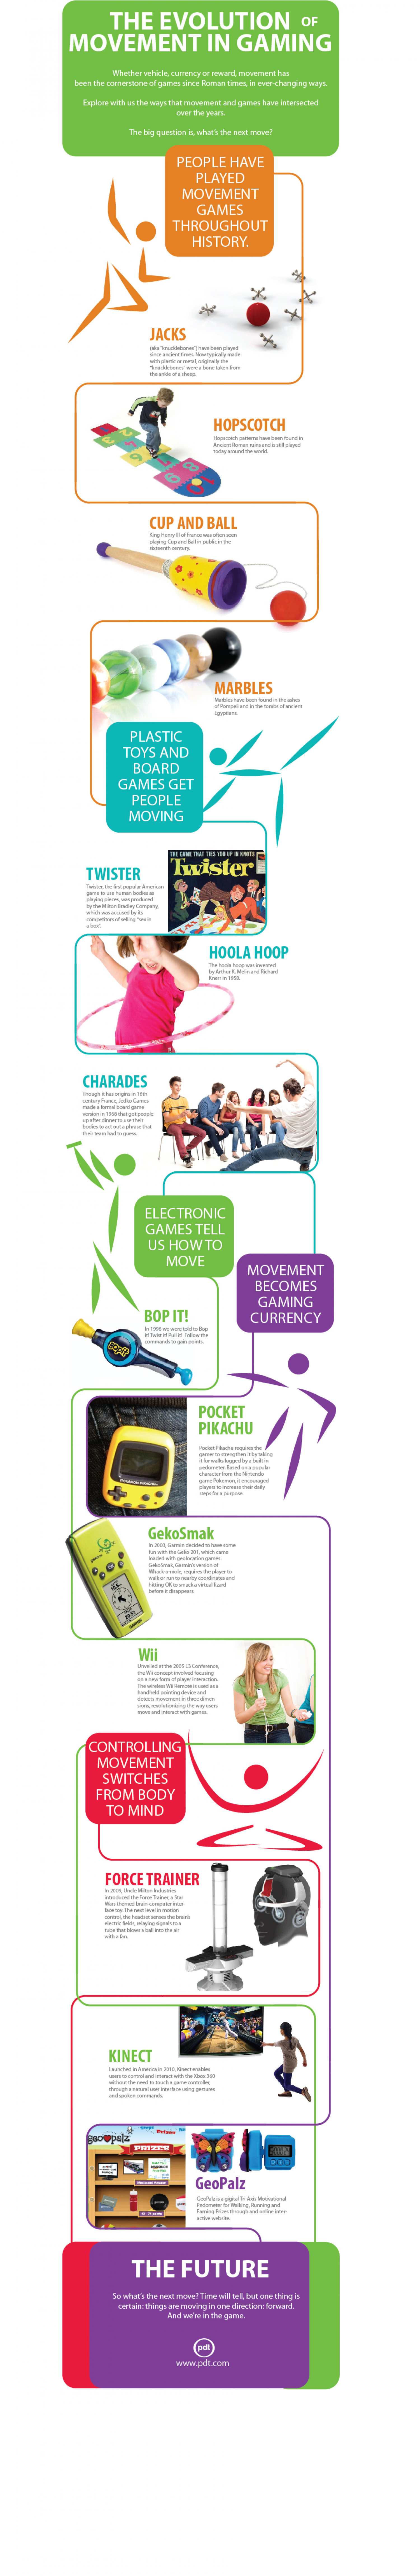 The Evolution of Movement in Gaming Infographic